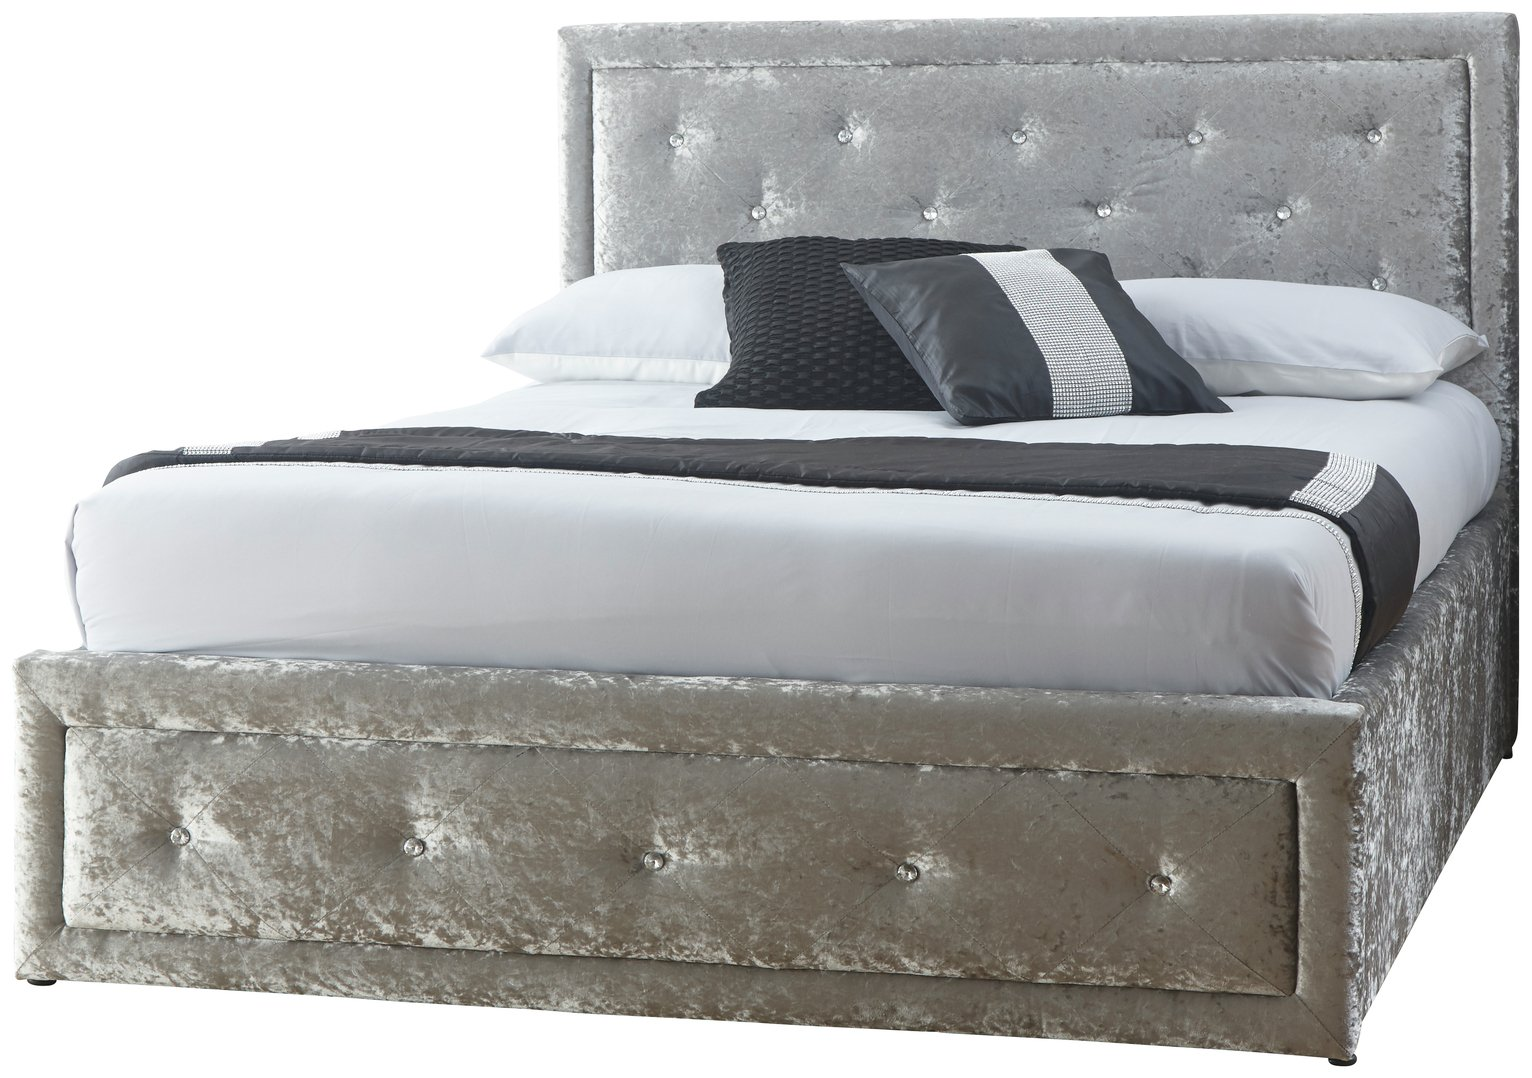 GFW Hollywood Crushed Velvet Ottoman Double Bed Frame